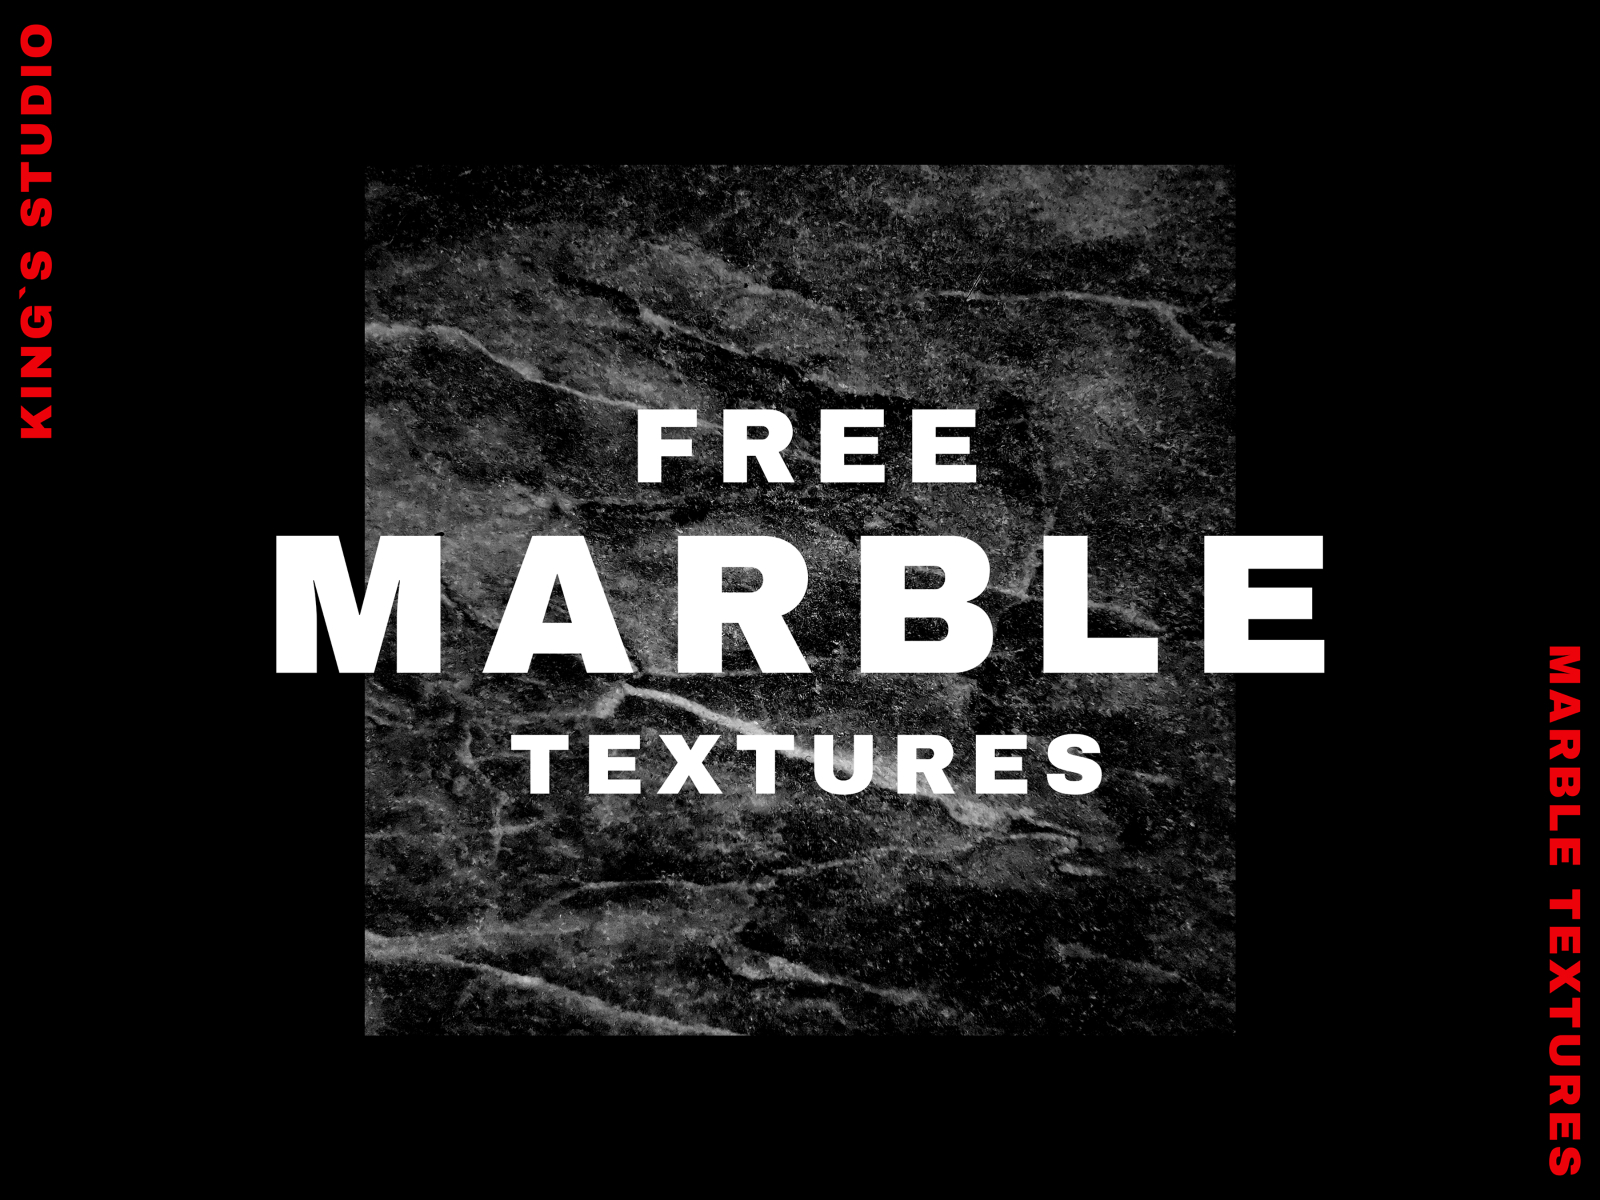 Free Marble Textures cover image